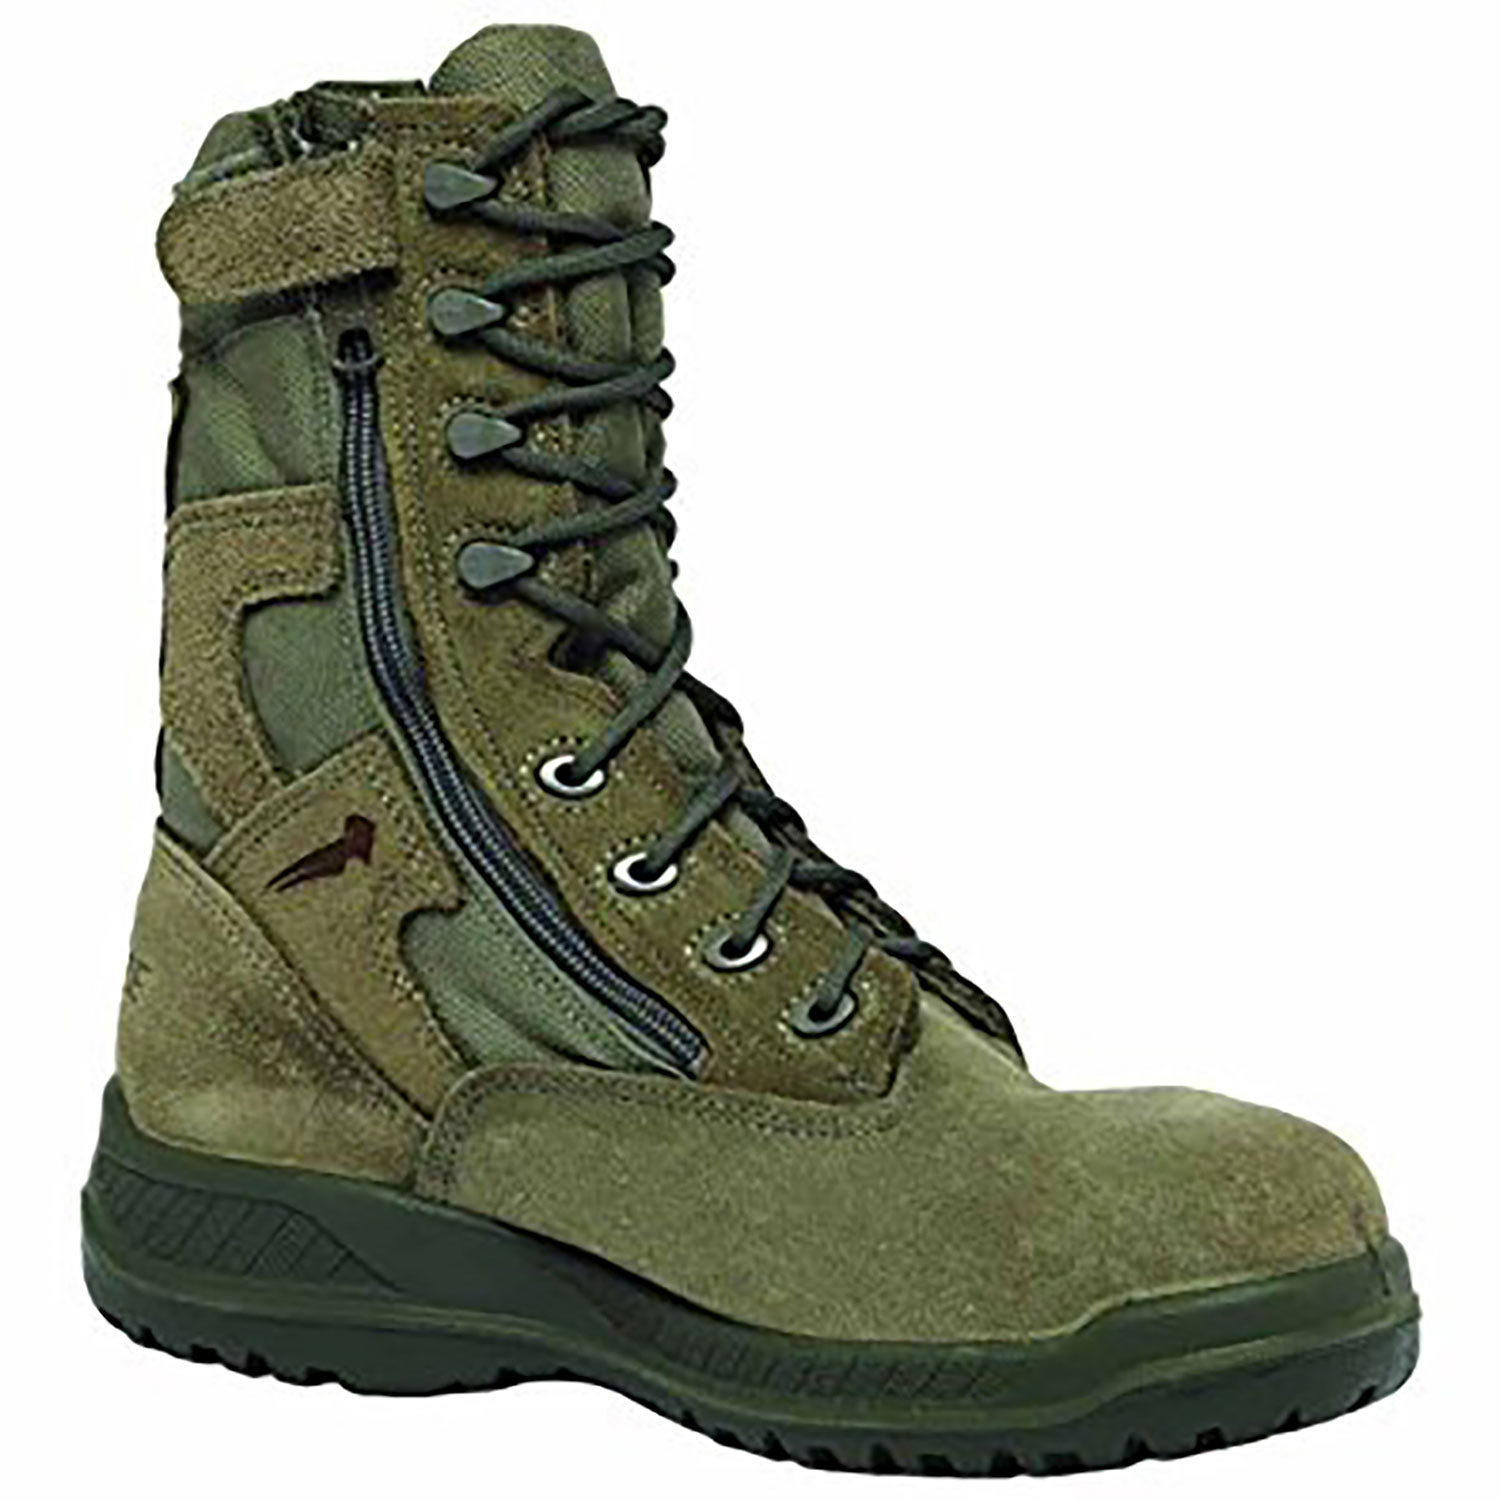 8e98e4066d4 Belleville Hot Weather USAF Side Zip Steel Toe Tactical Boot.